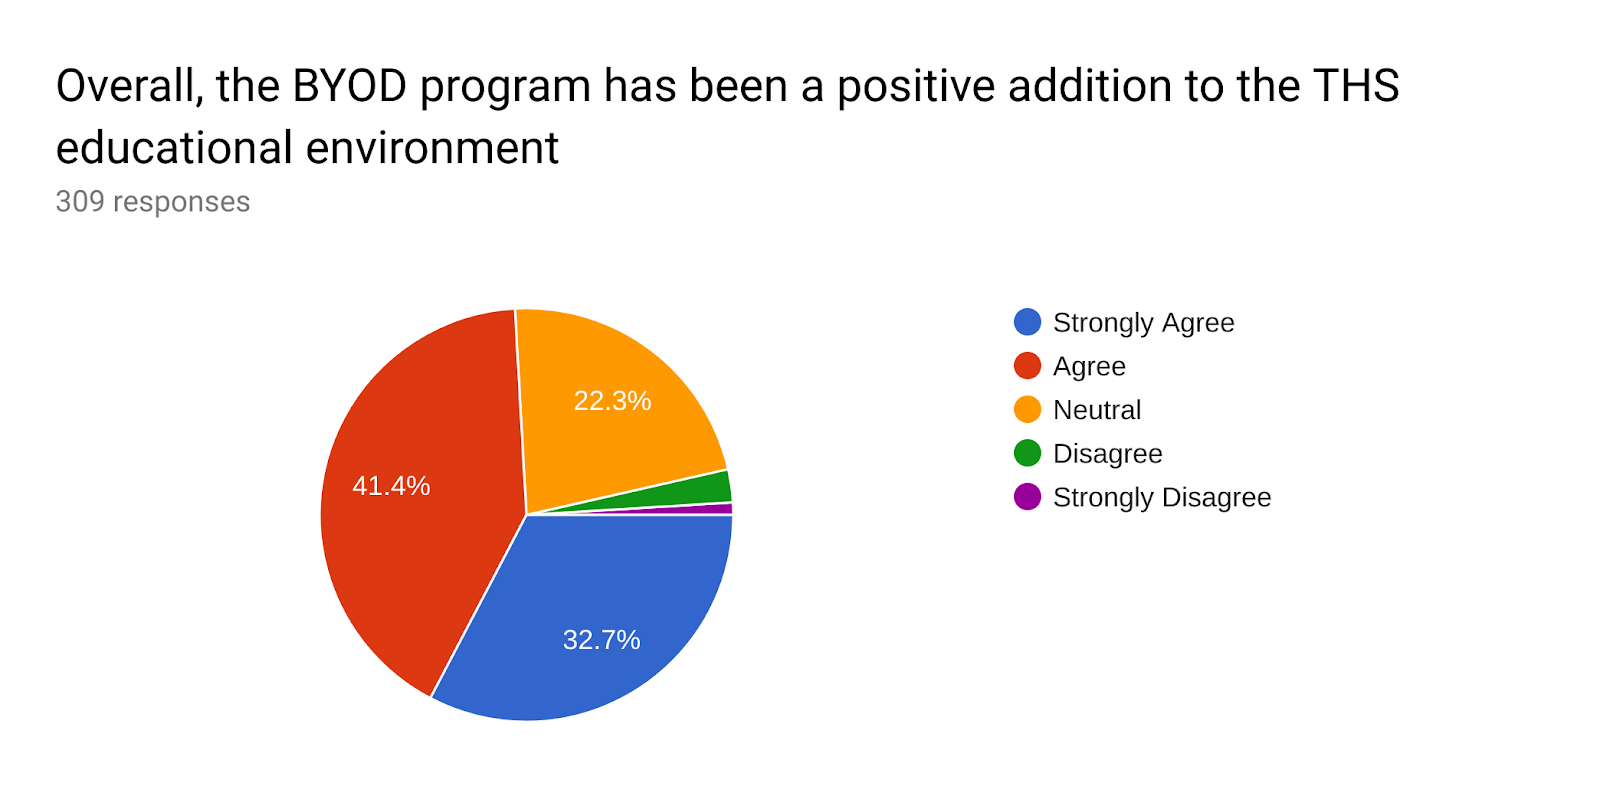 Forms response chart. Question title: Overall, the BYOD program has been a positive addition to the THS educational environment. Number of responses: 309 responses.